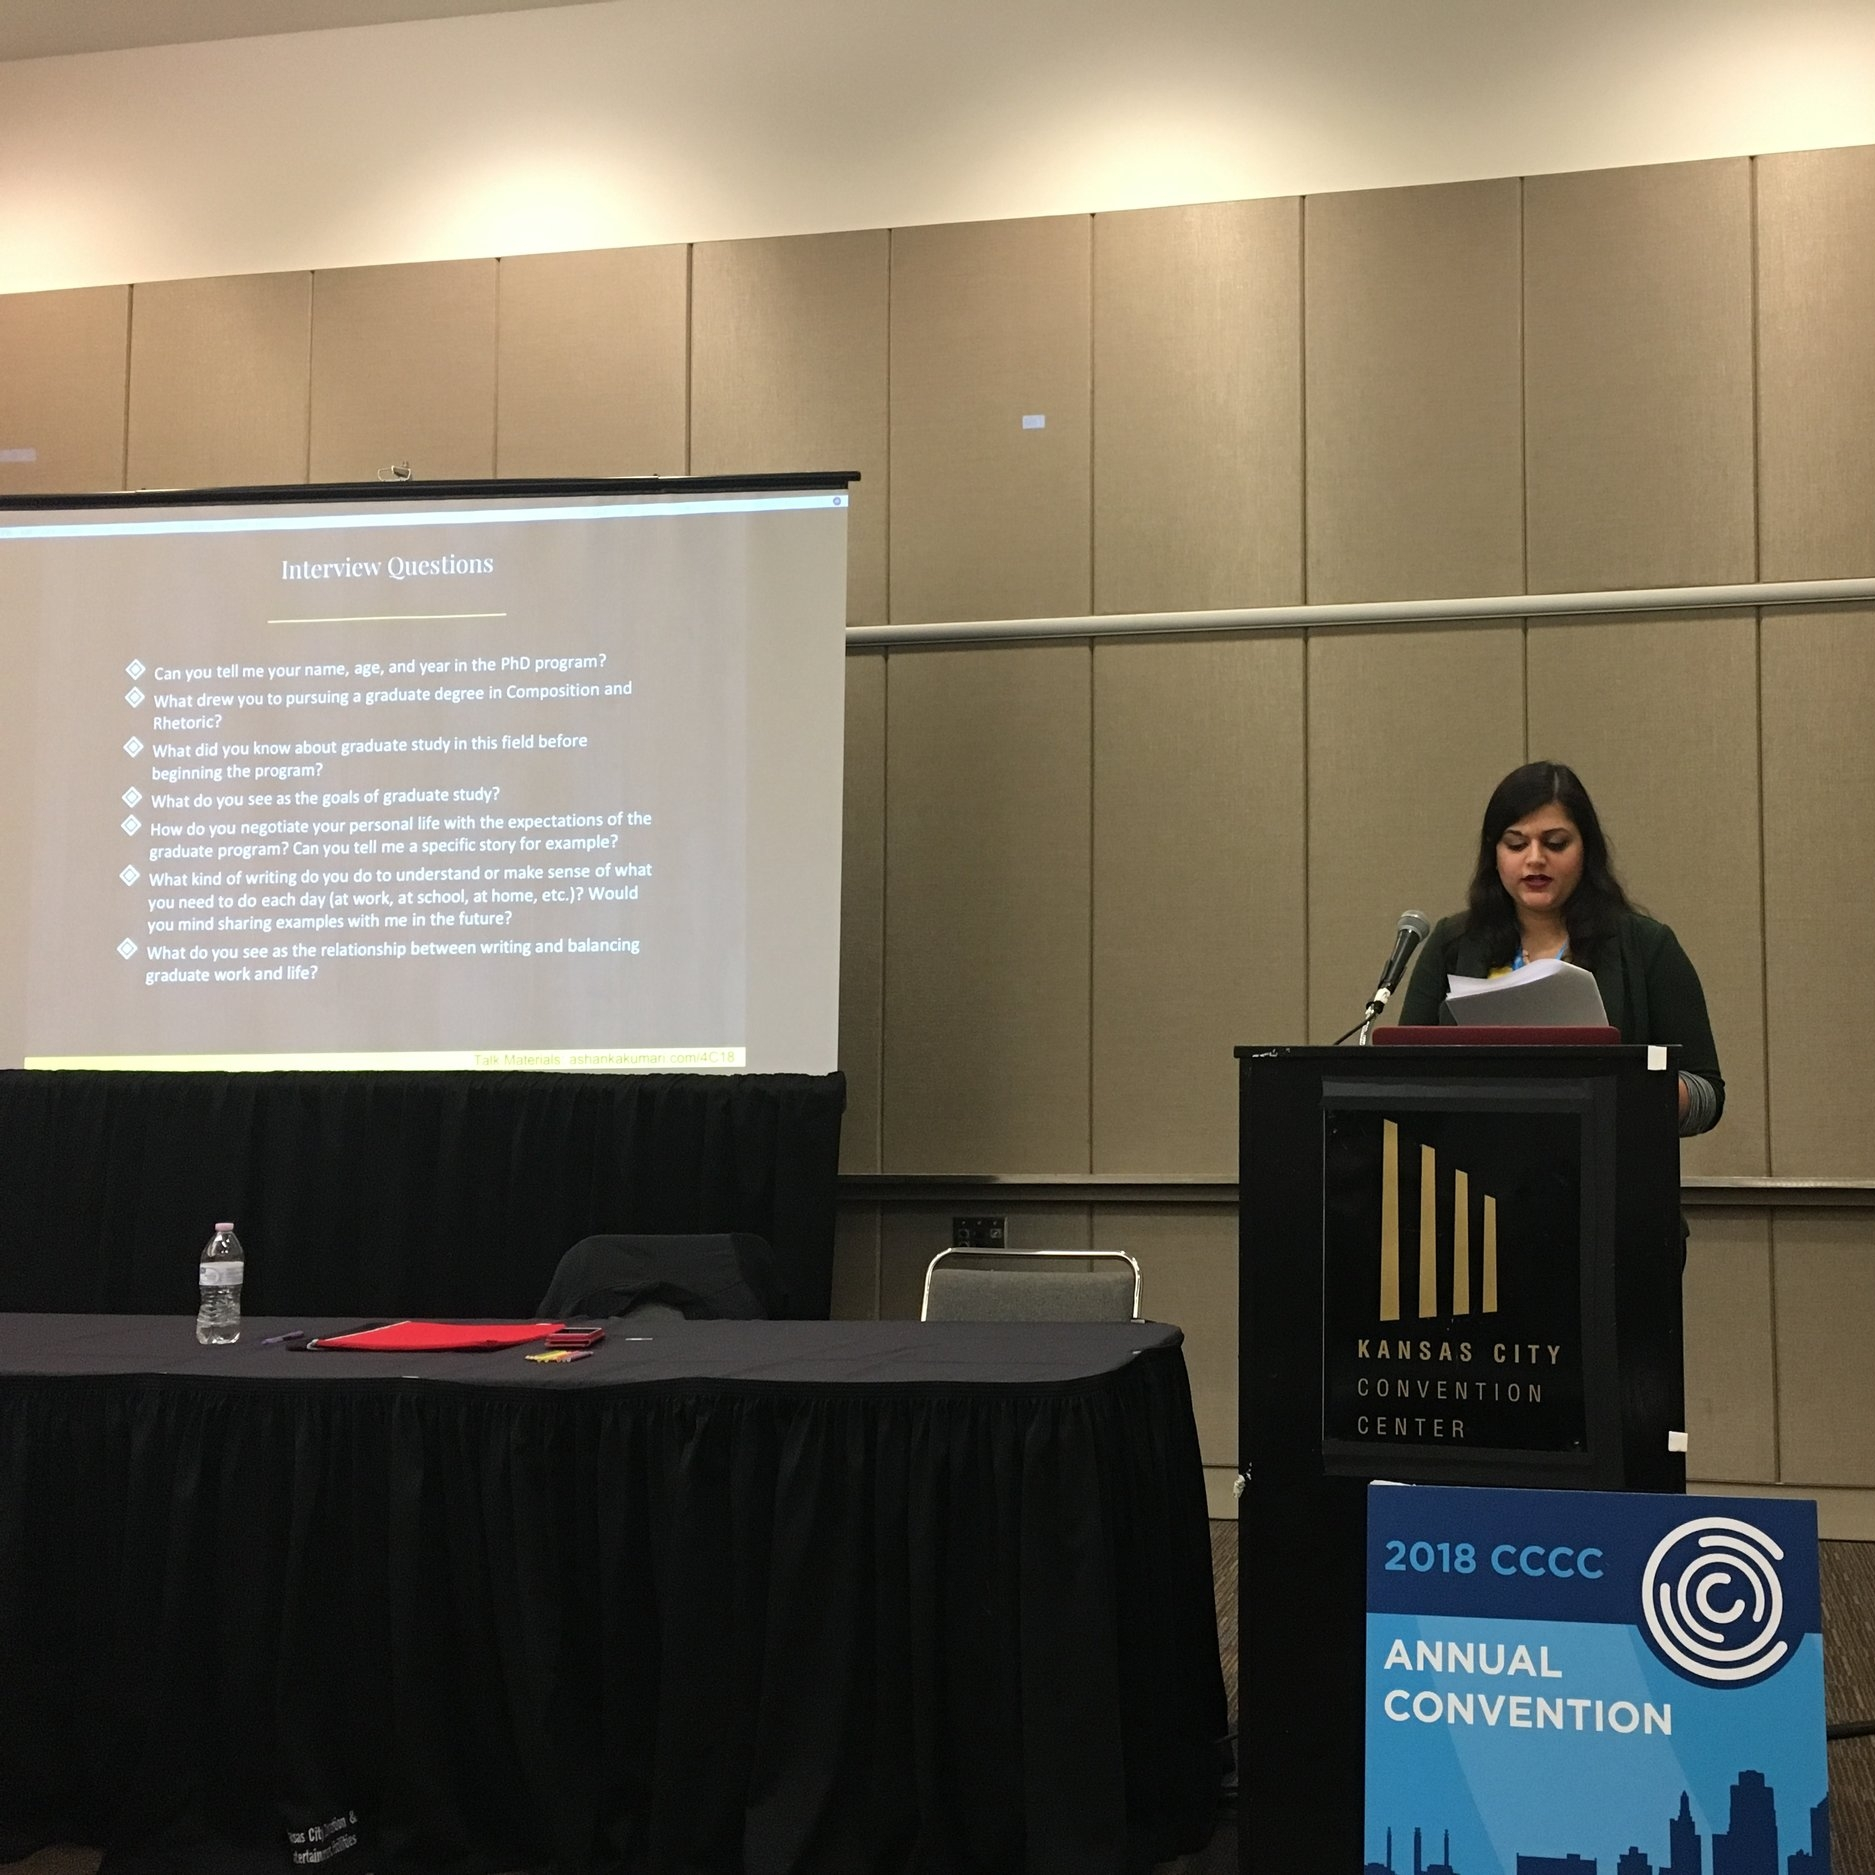 "Conference on College Composition and Communication 2018 - Pictured here: Ashanka Kumari presents her paper on PhD student perceptions of navigating graduate lives at the 2018 Conference on College Composition and Communication. Kumari, Ashanka. ""'My Life is Just Like a List Now': PhD Student Perceptions on Navigating Graduate Lives."" Paper. Conference on College Composition and Communication. Kansas City, Missouri. March 2018."